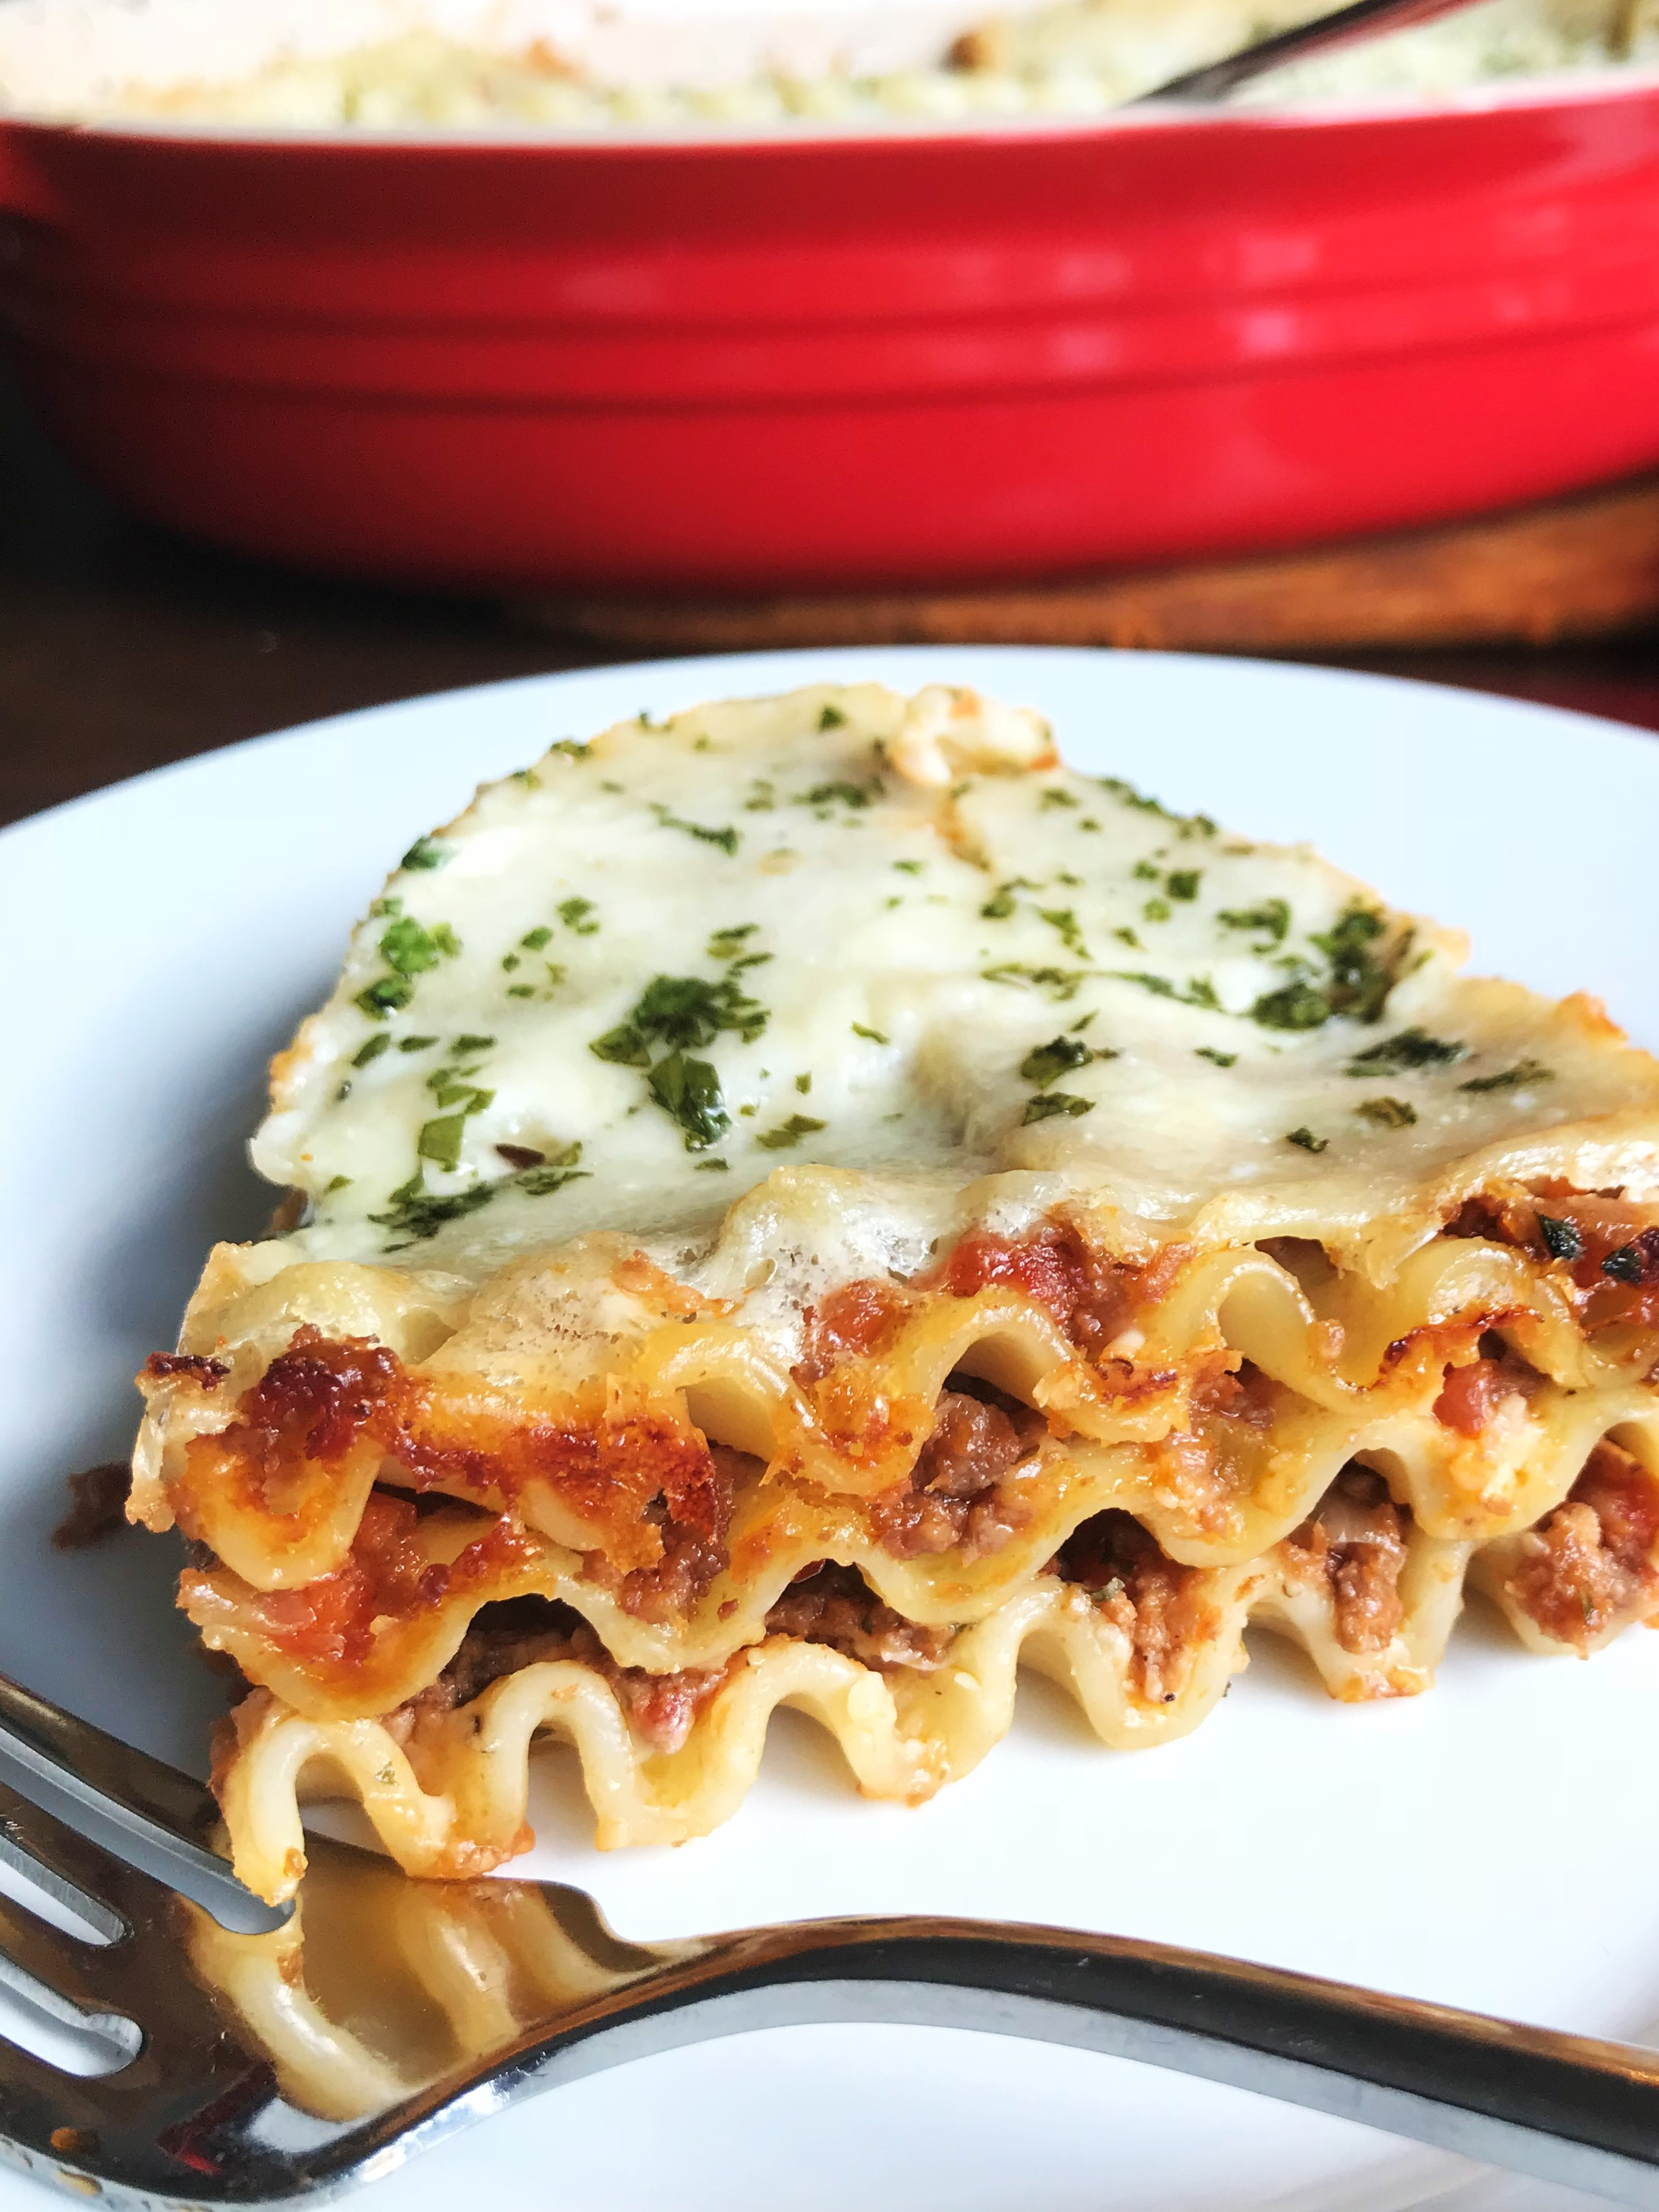 The layers of our Classic Lasagna. You can make more layers if you want! Just double the Bolognese, double the Parmesan bechamel and double the lasagna noodles. Really great either way.